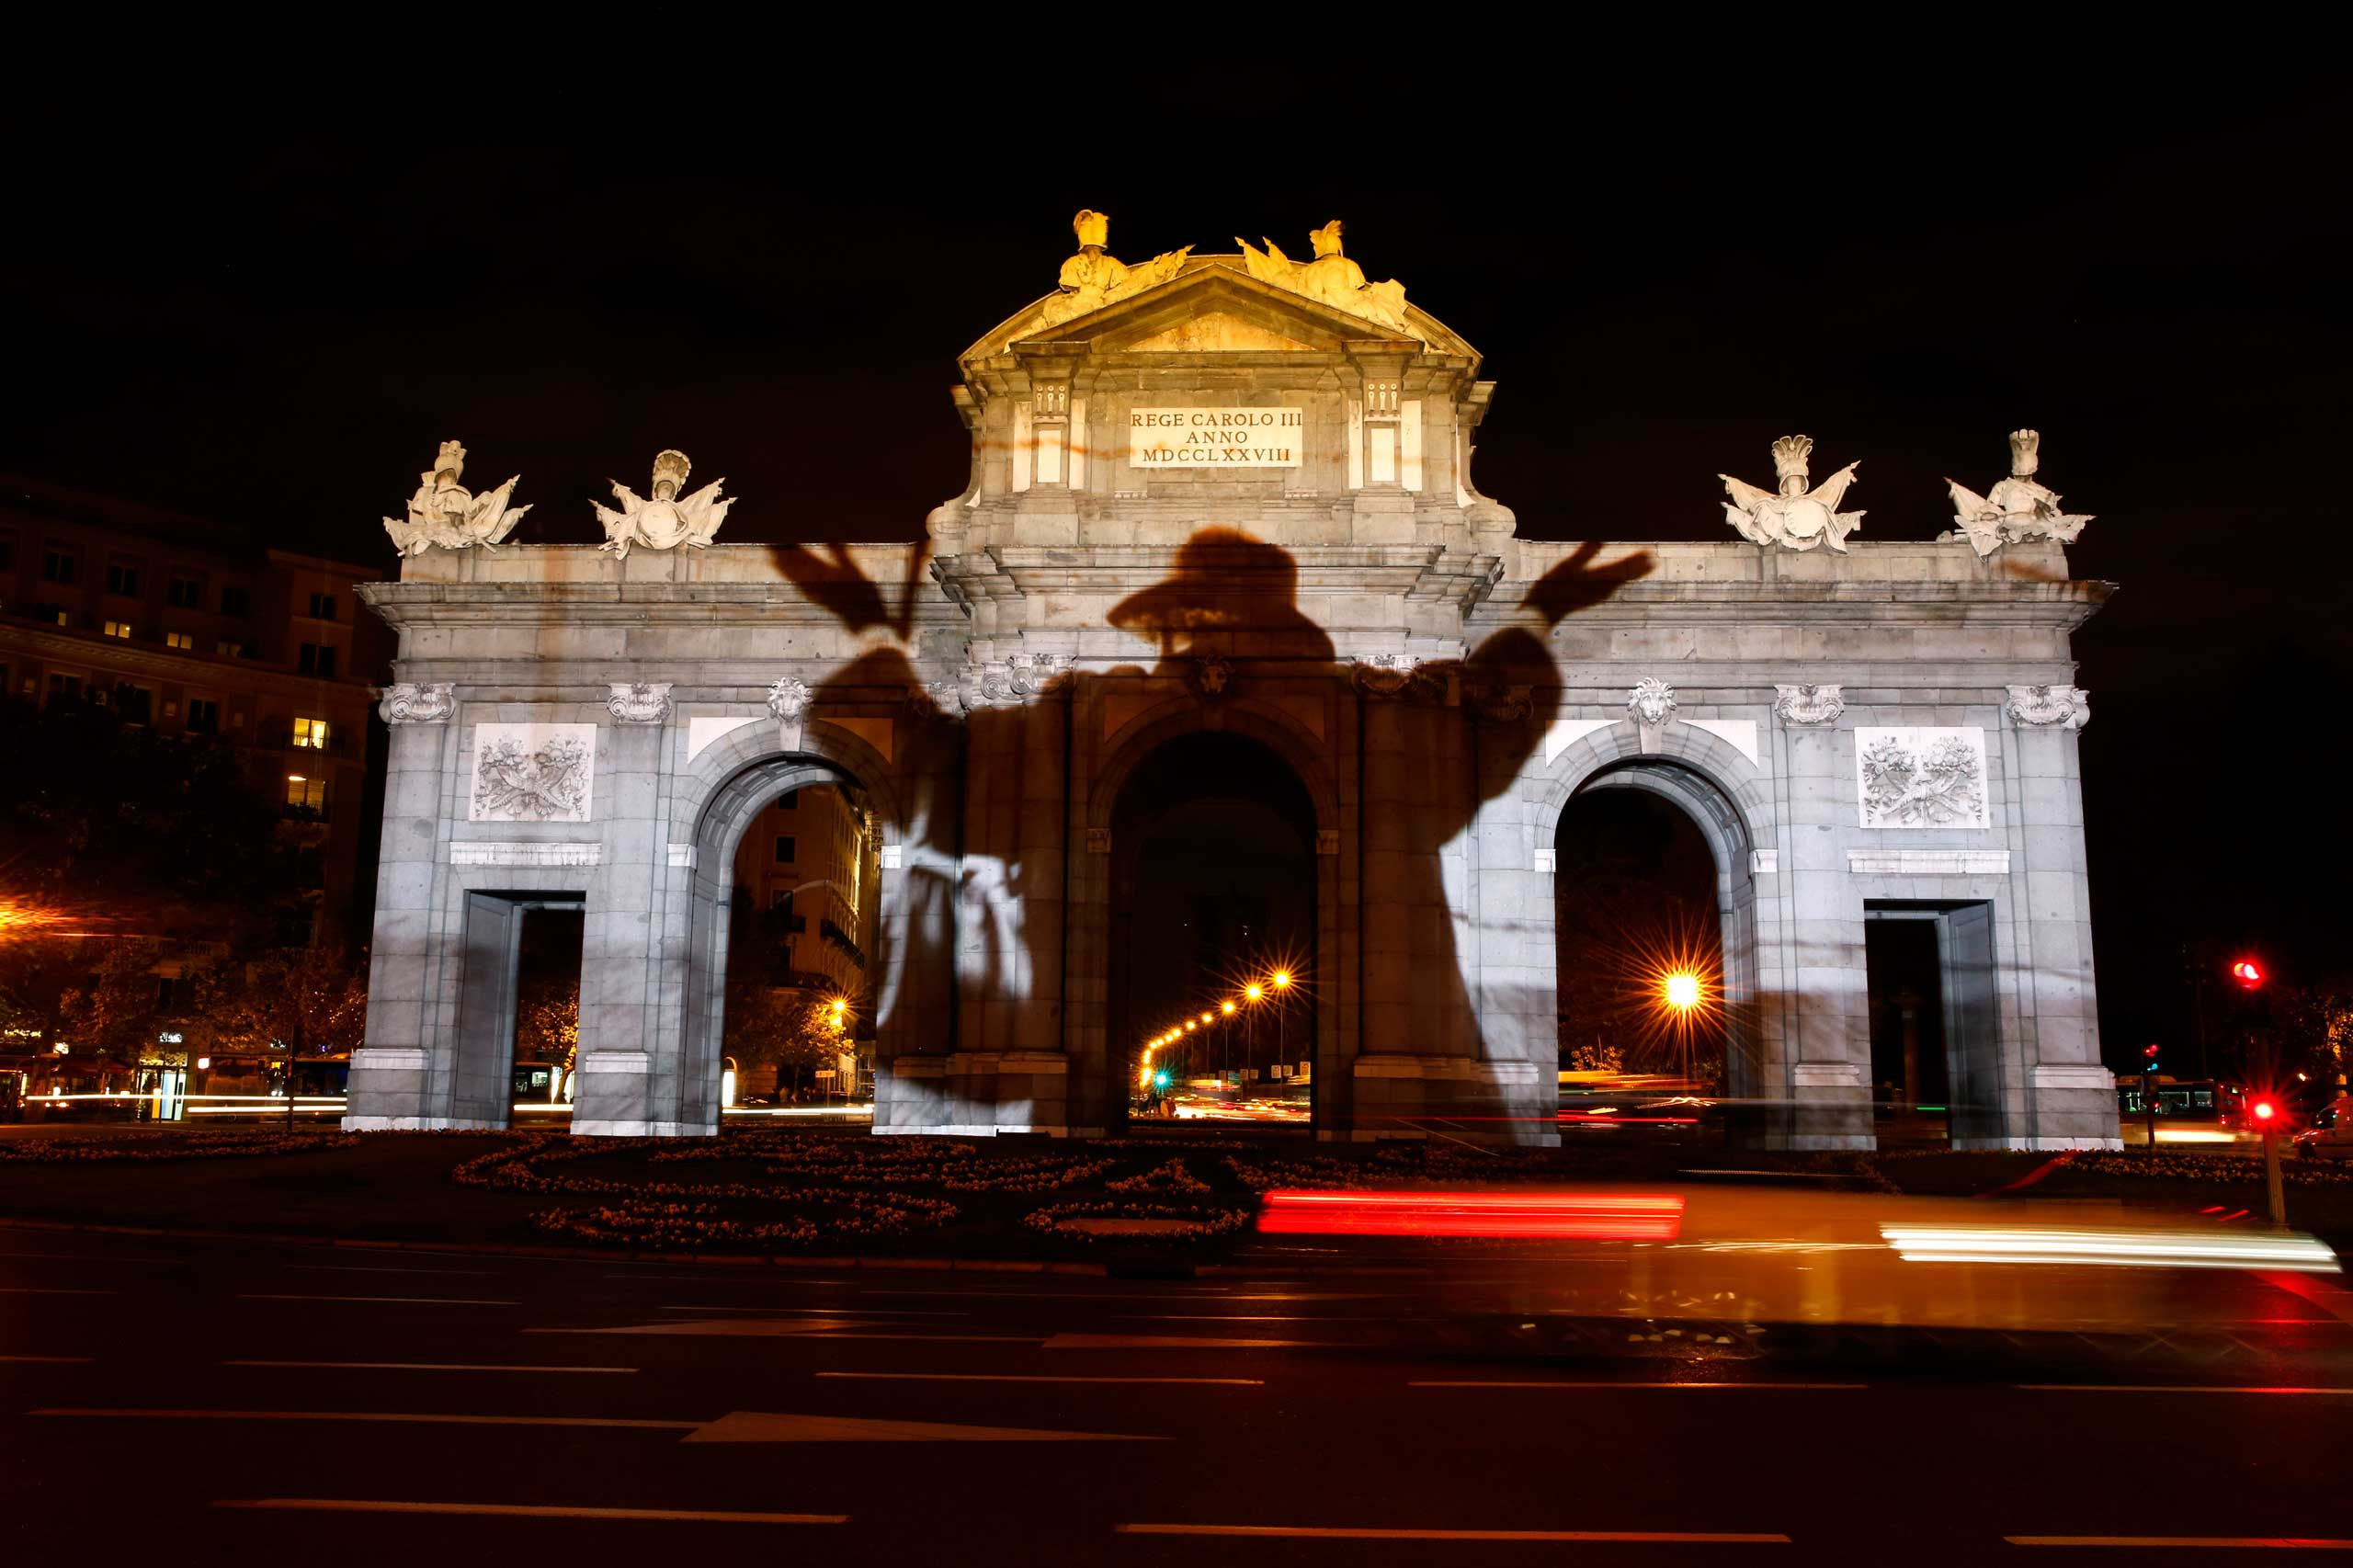 Nov. 7, 2014. A historic image commemorating the former Berlin Wall is projected on Alcala Gate in Madrid. Germany will celebrate the 25th anniversary of the fall of the wall on November 9.